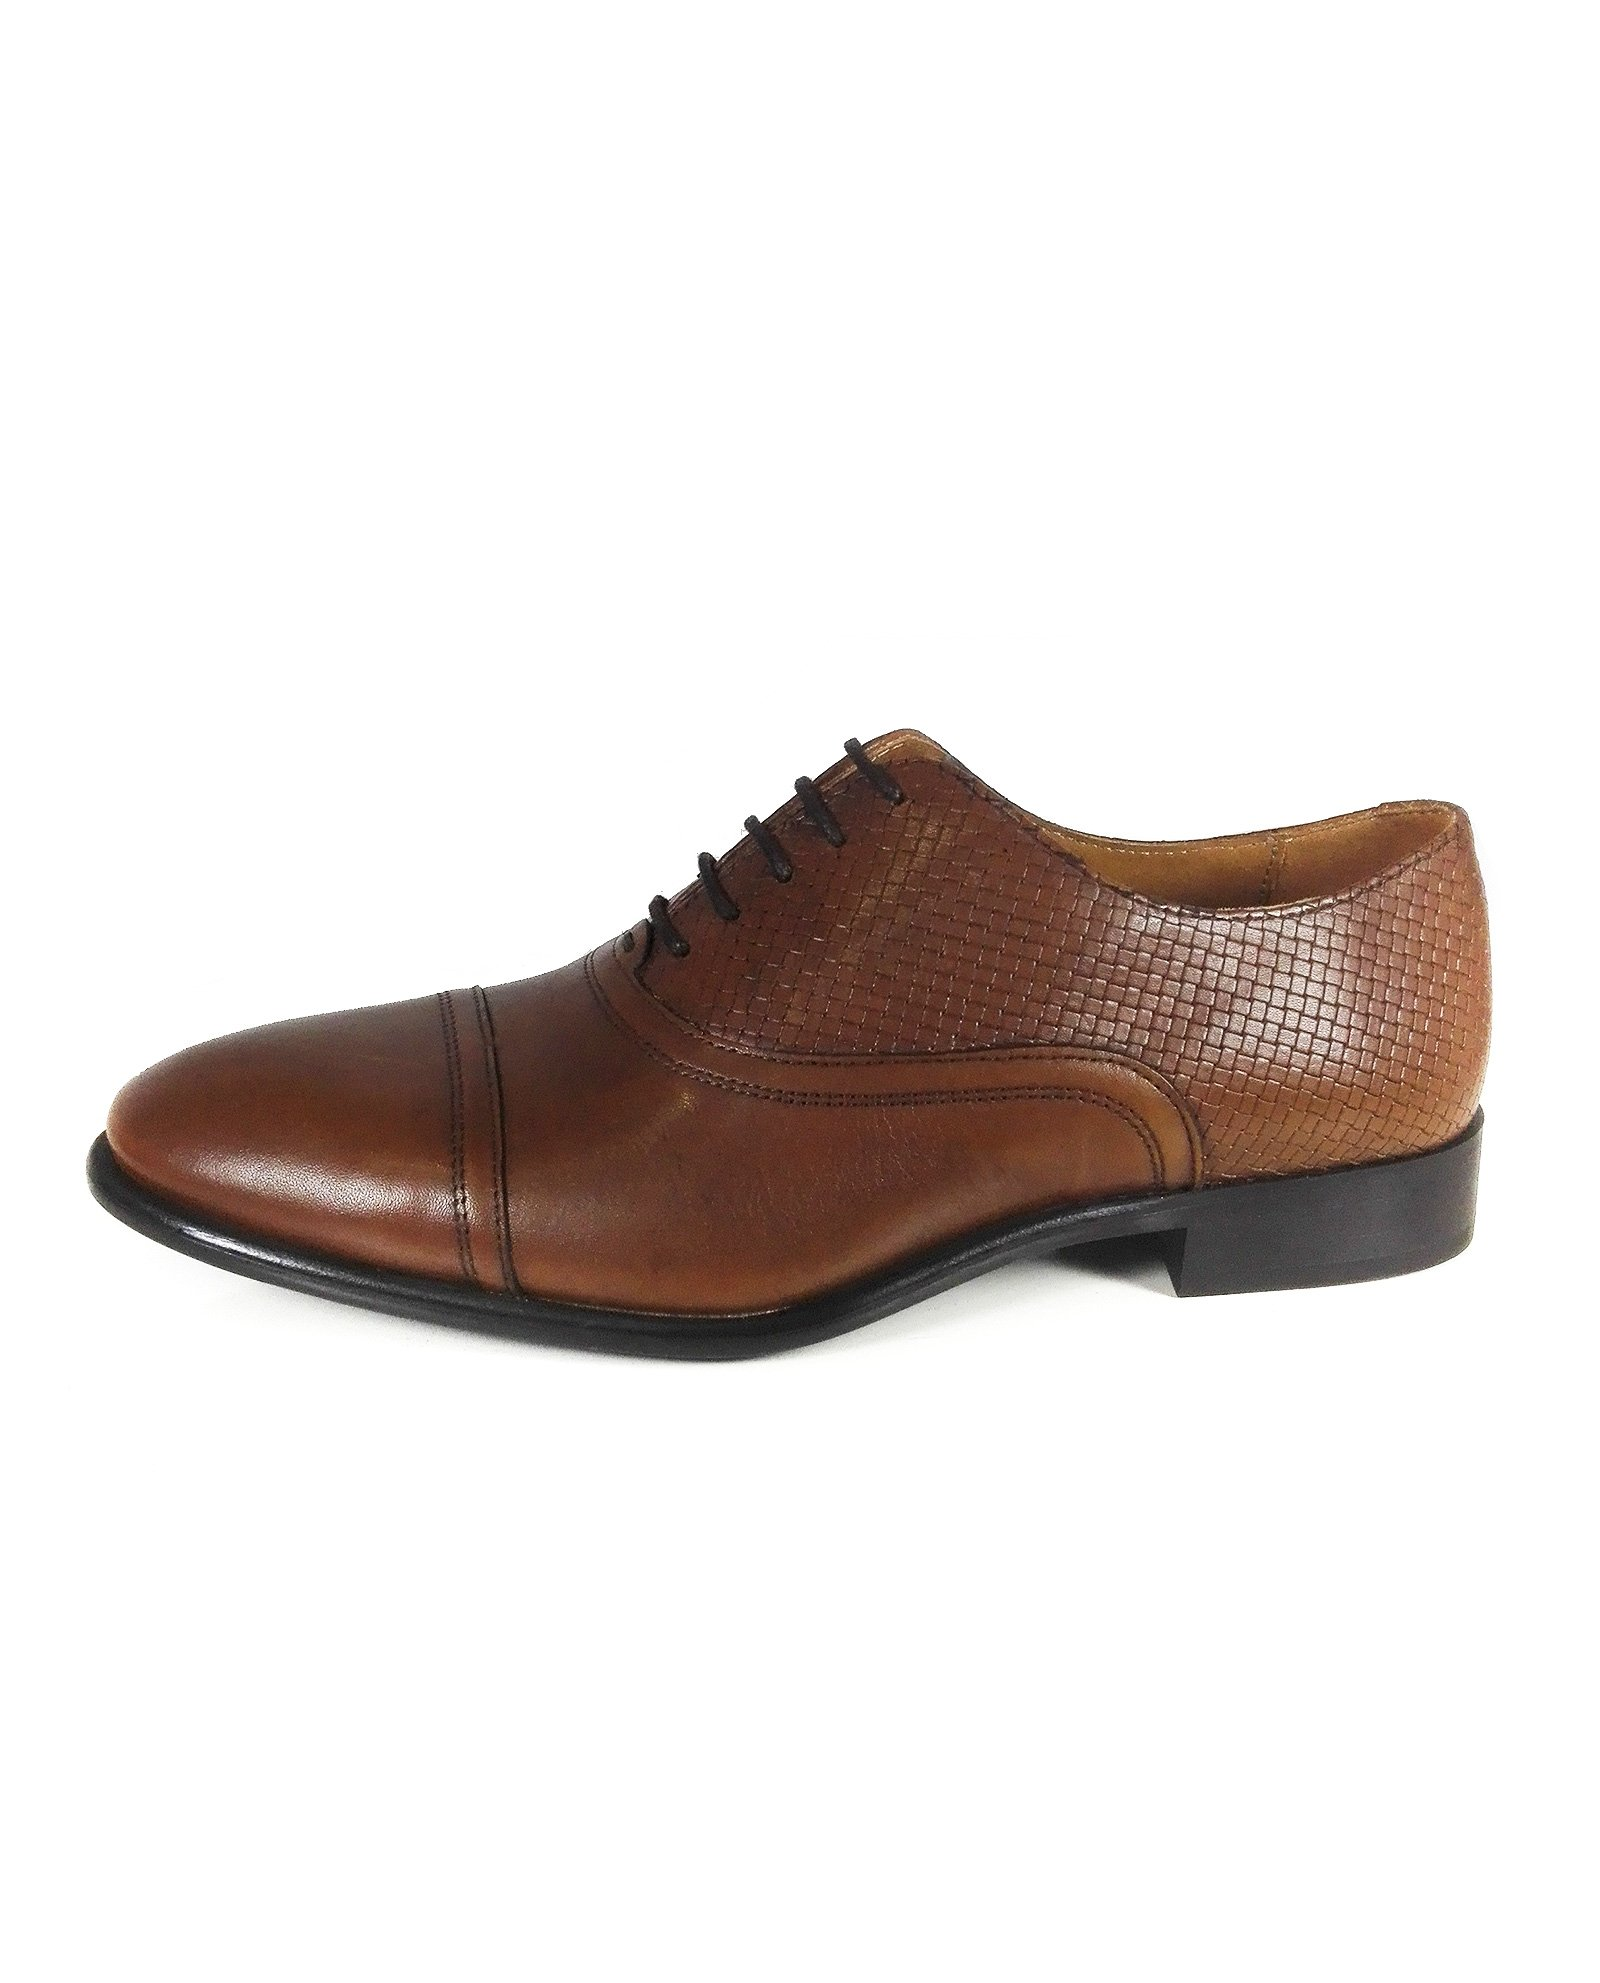 Zara Men Smart brown leather shoes 2402/302 (43 EU | 10 US | 9 UK)